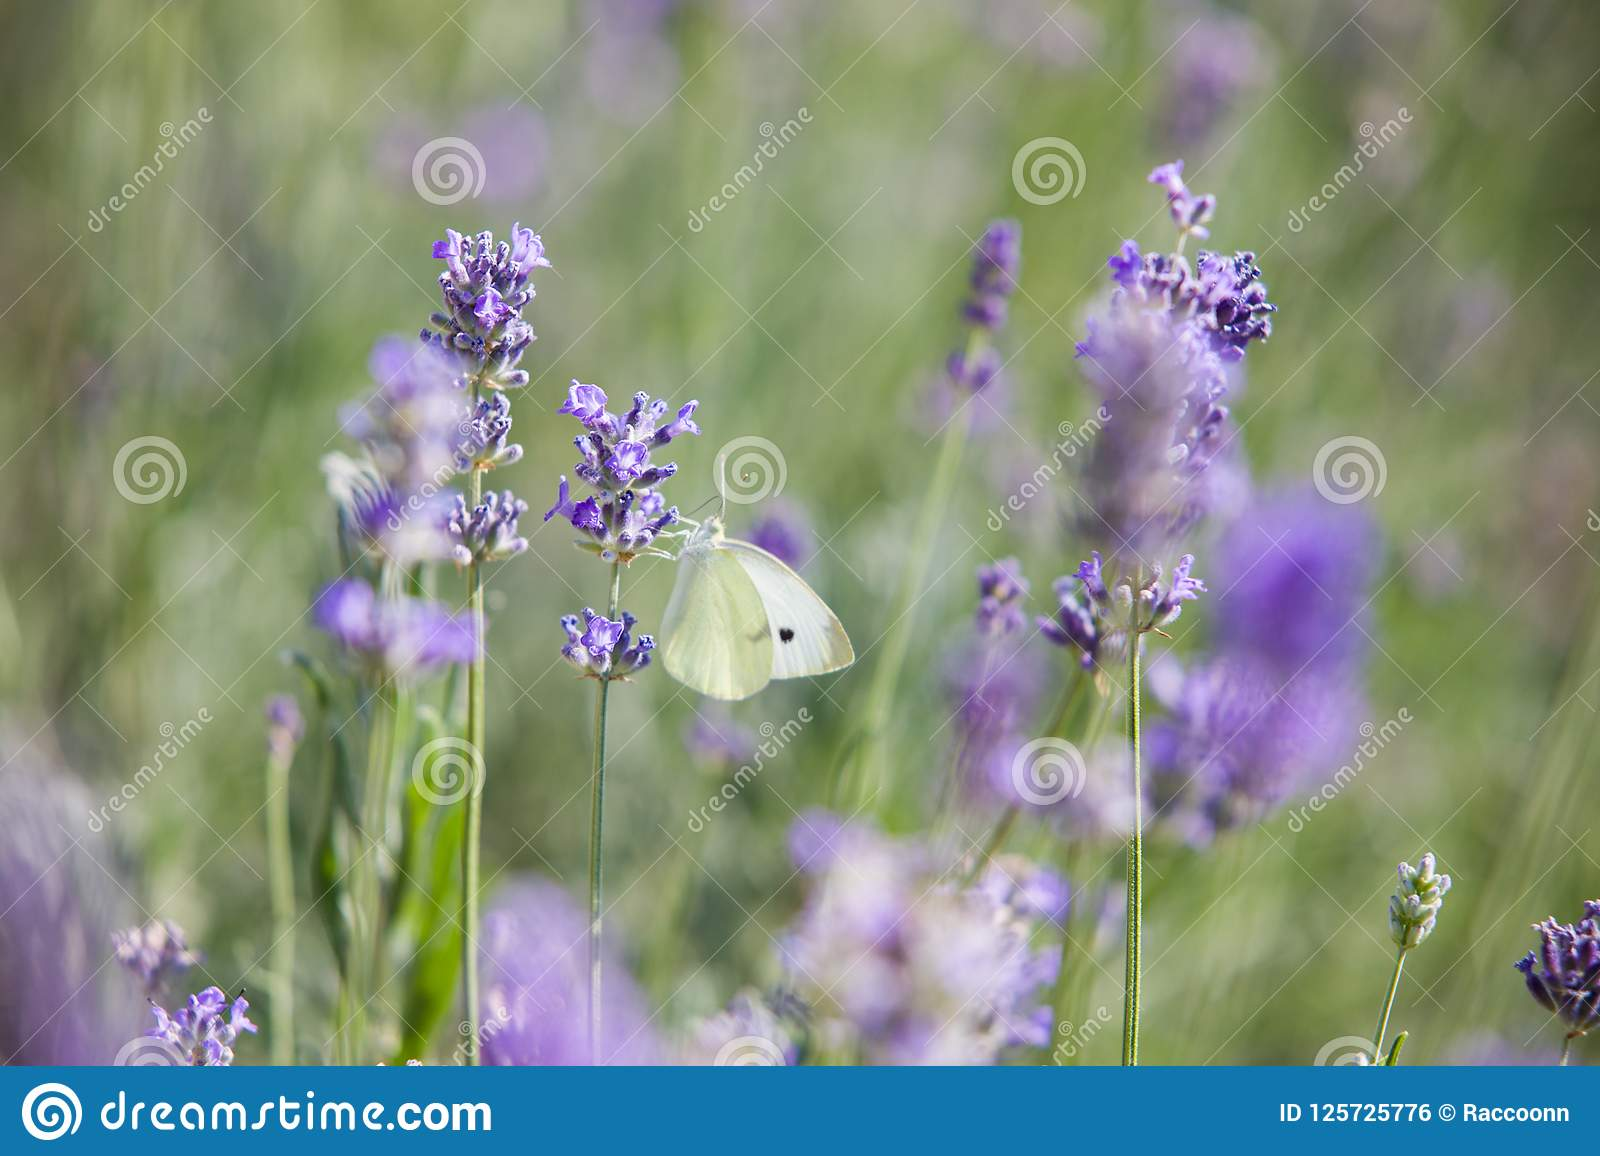 Butterfly over lavender flowers.